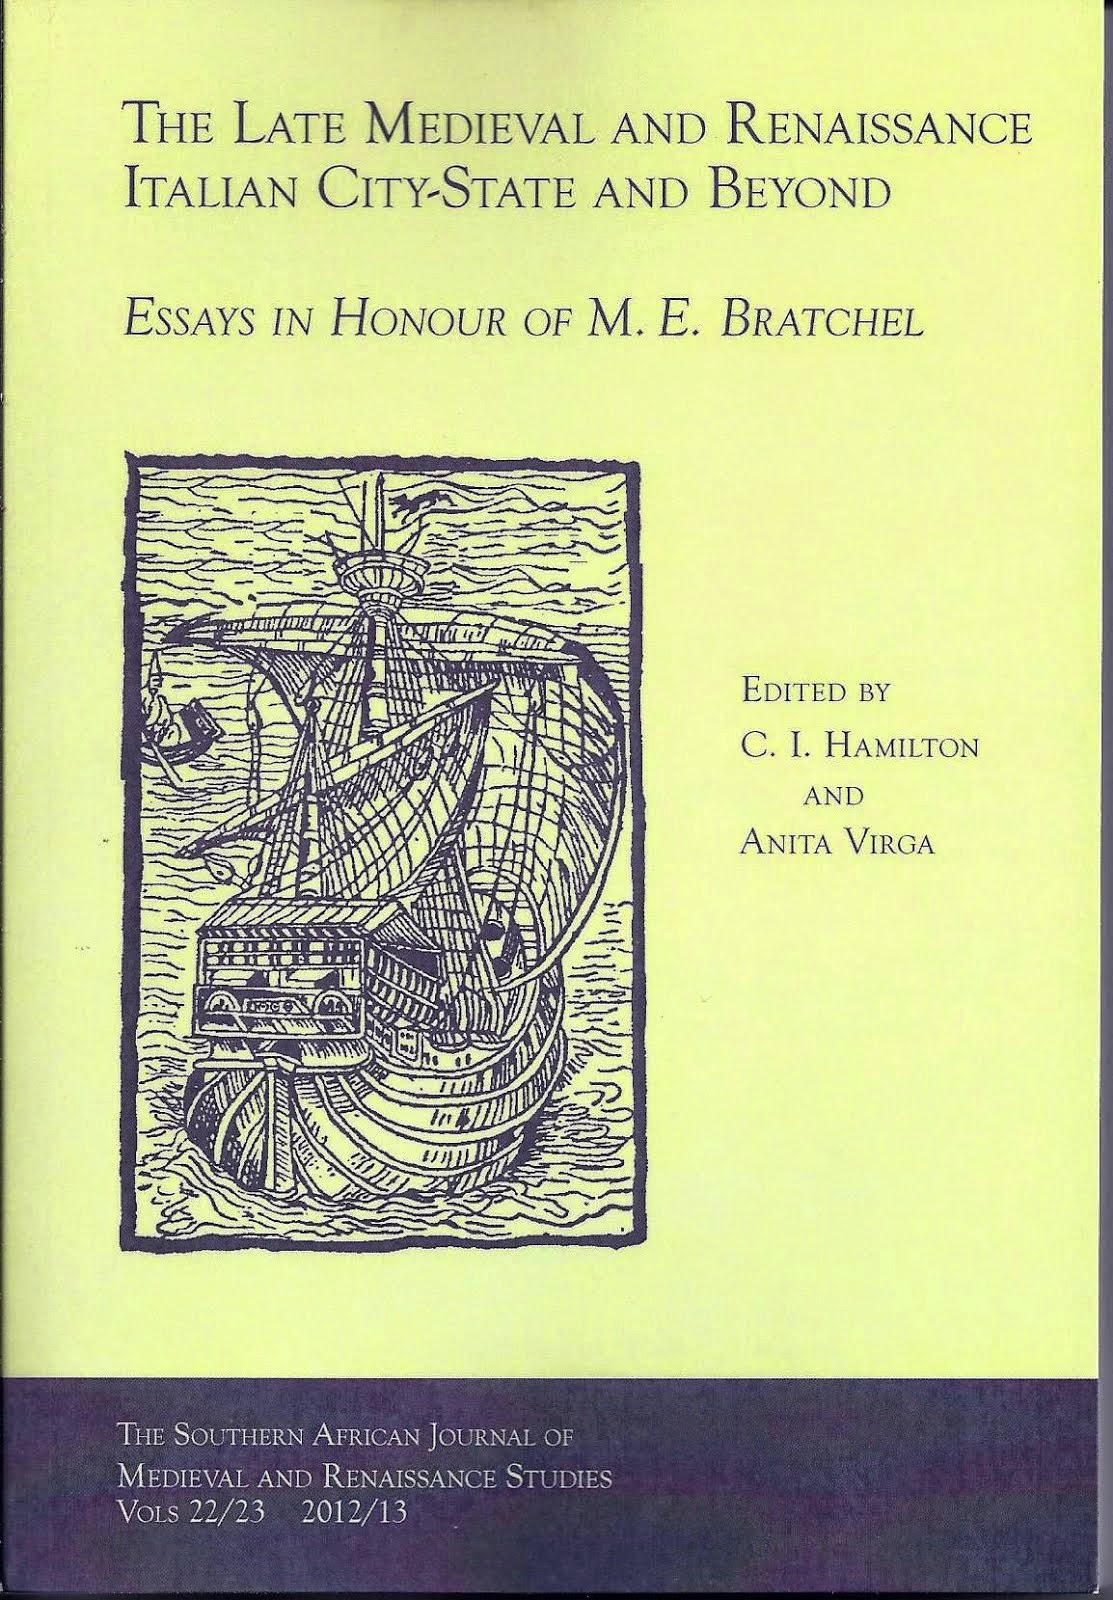 Essays in honour of M.E. Bratchel